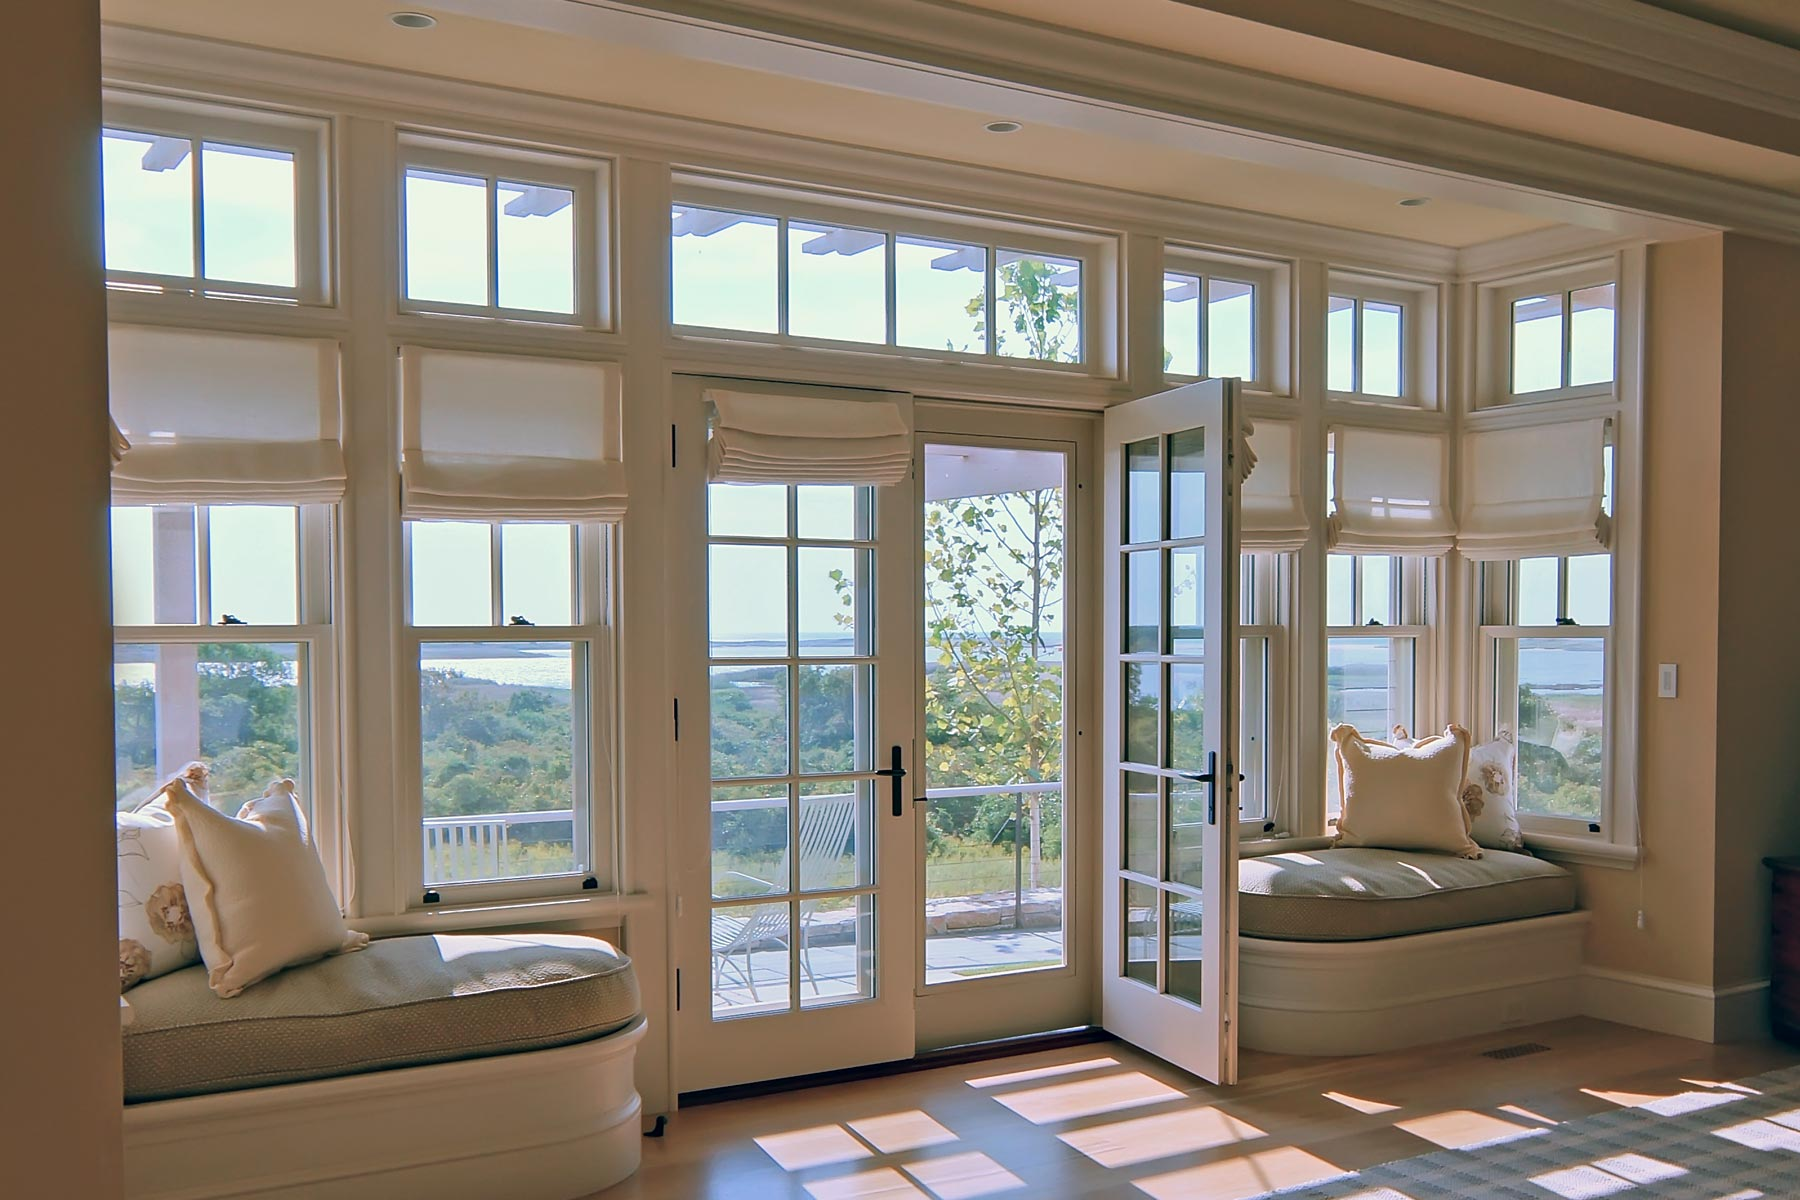 Double Hung Windows With Fixed Transom H Hirschmann Ltd